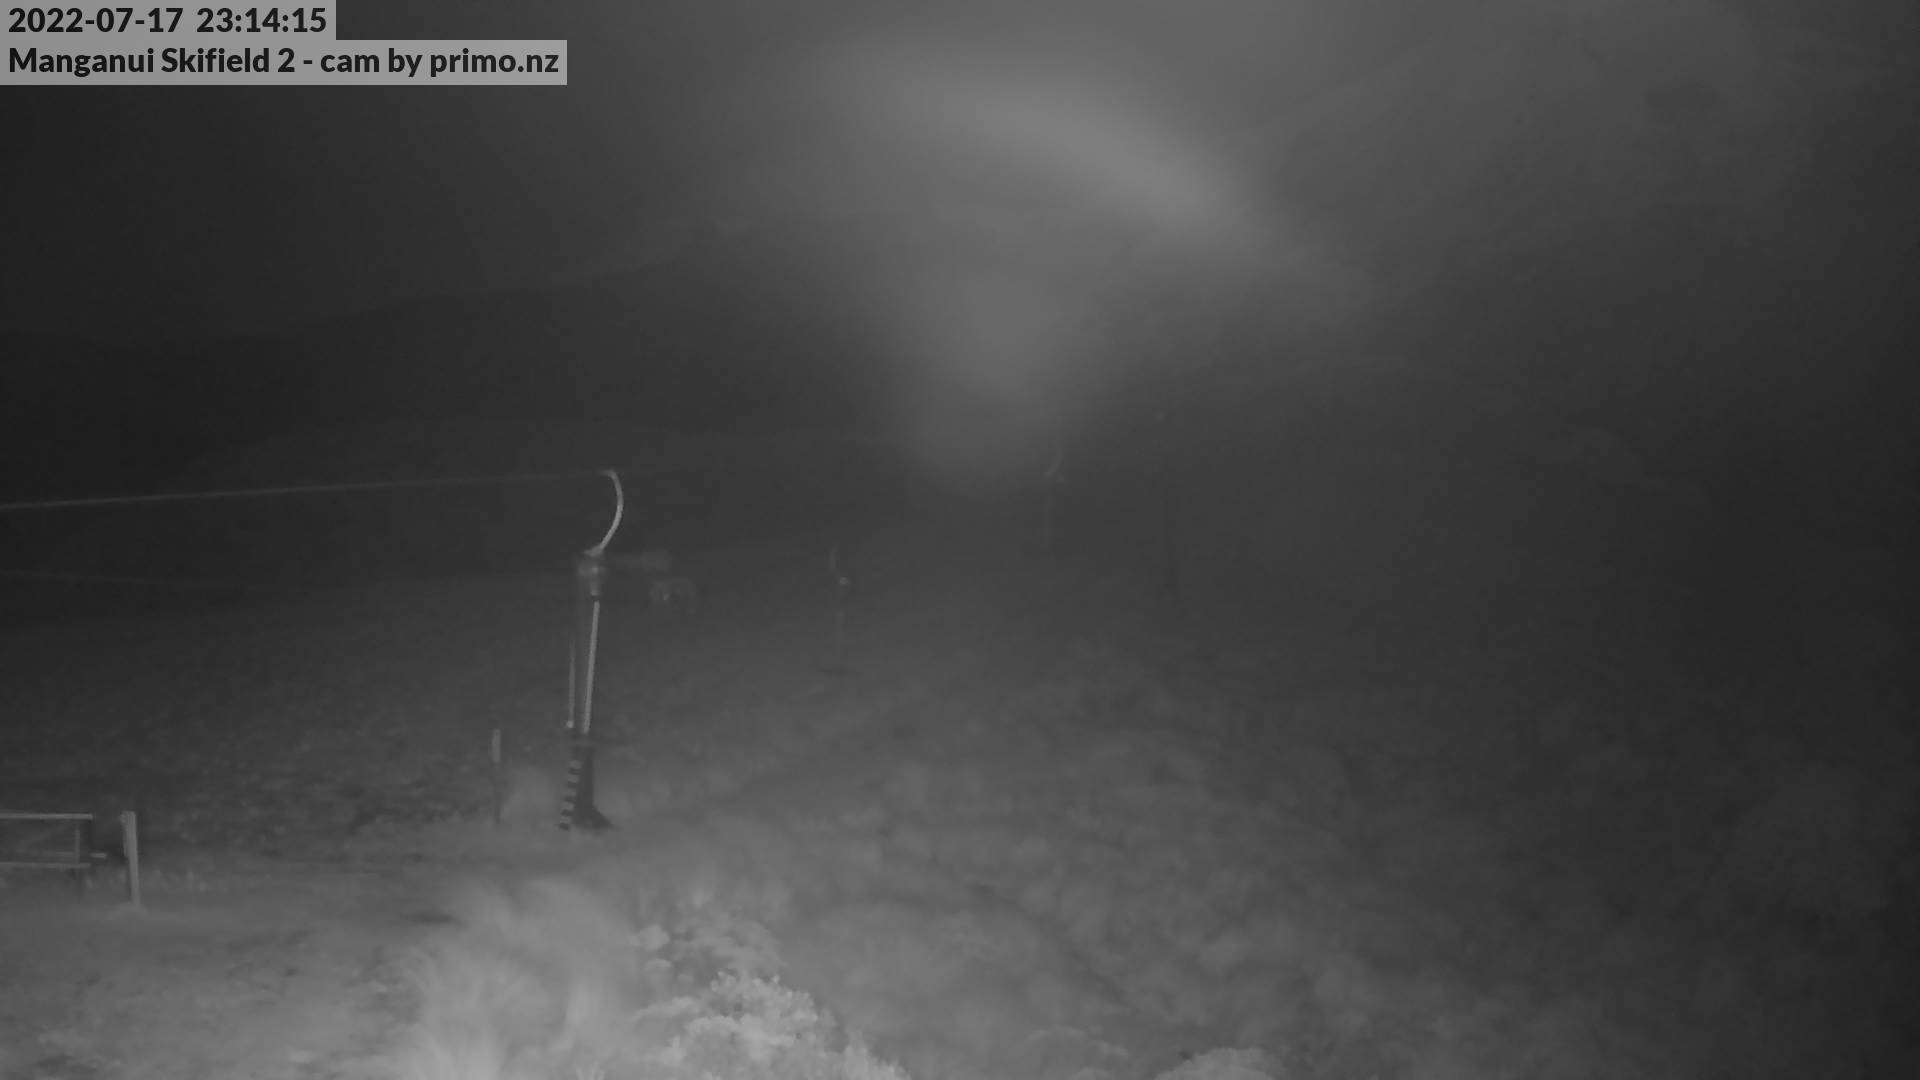 Manganui Skifield 2 - cam by primo.nz